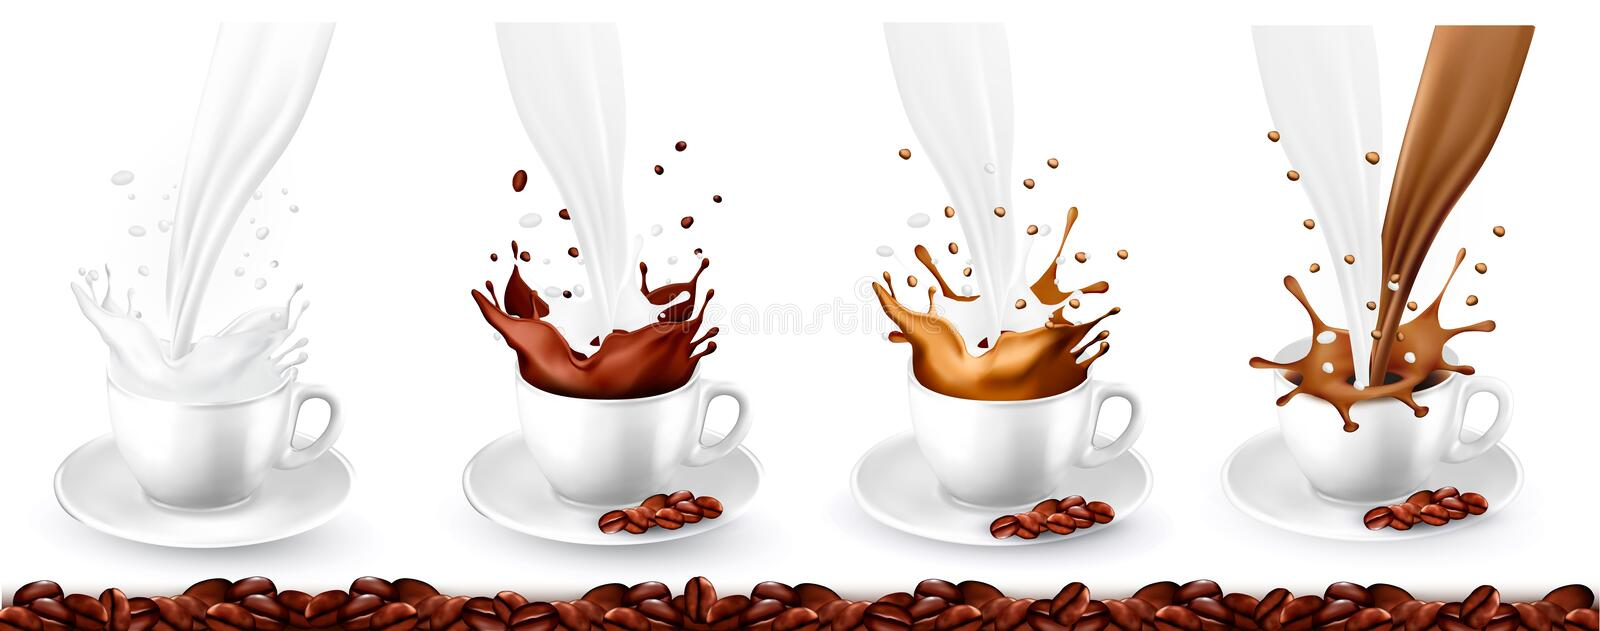 Set of coffee, cappuccino and milk splash in cups. vector illustration